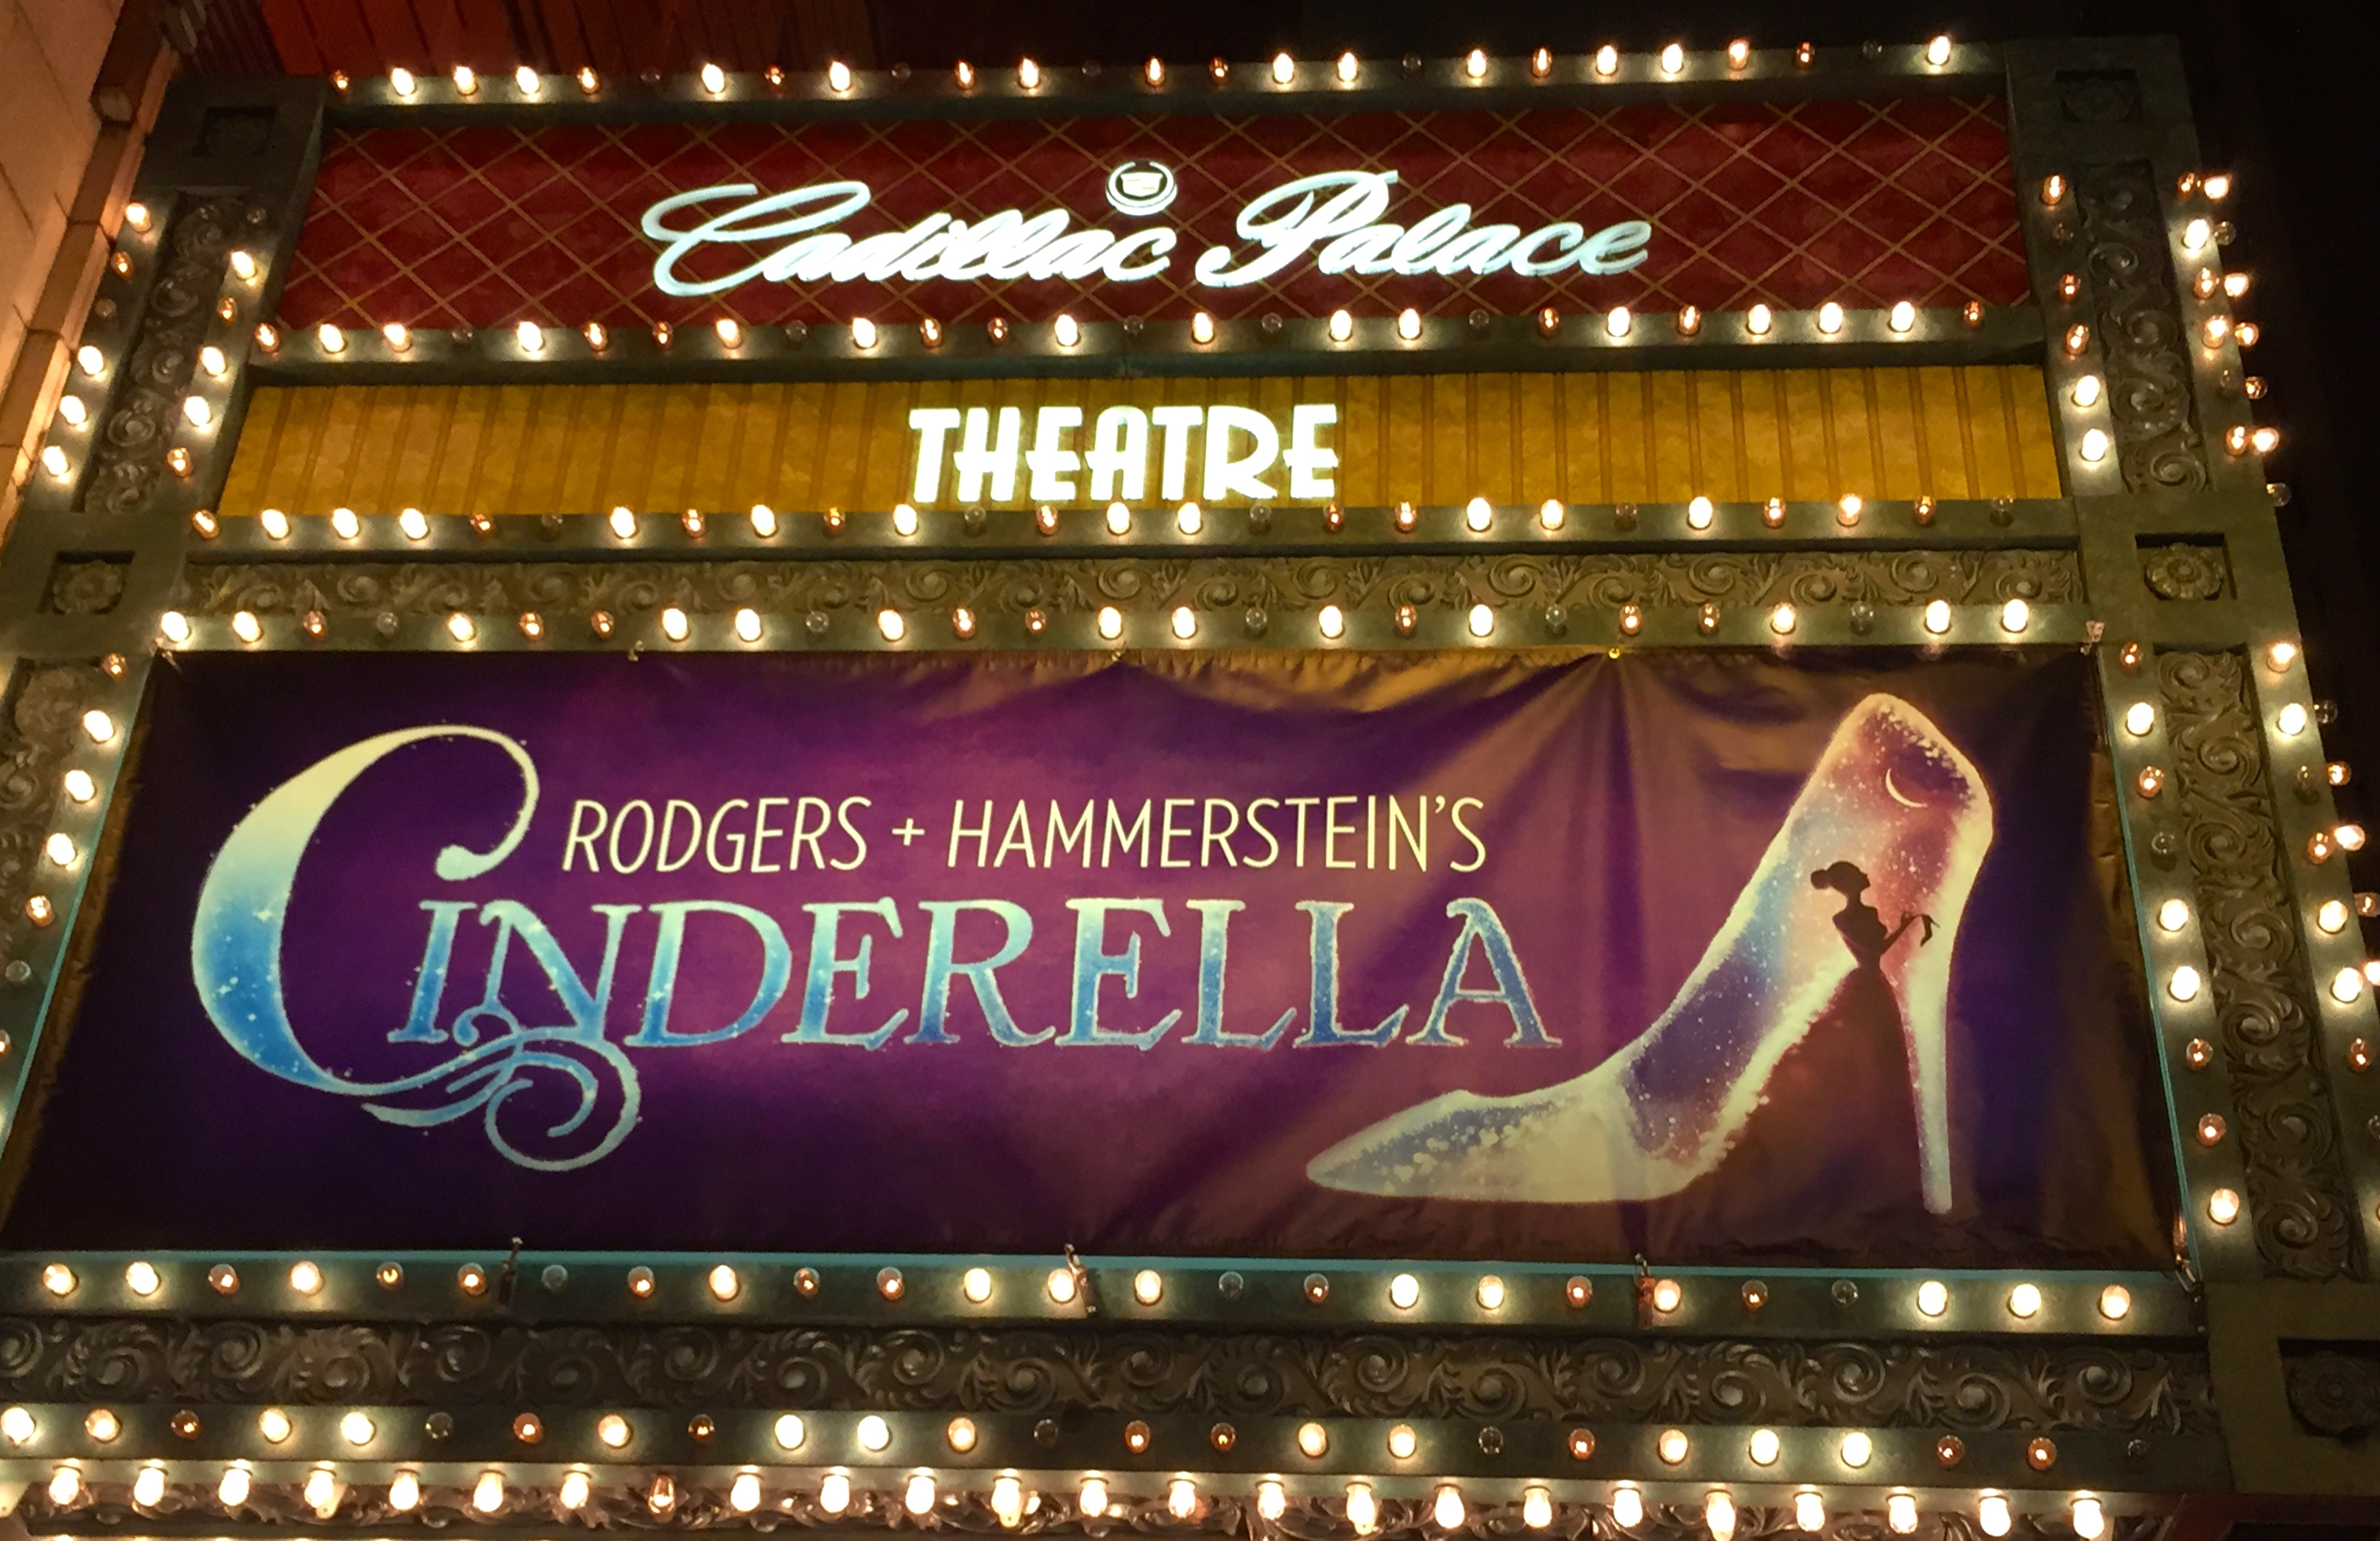 The First National Tour of Rodgers + Hammersteinu0027s Cinderella is as fun and frothy as the ball gowns they wear. The recent Broadway production adds an ...  sc 1 st  Night Out Reviews & Theatre Review | Night Out Reviews azcodes.com